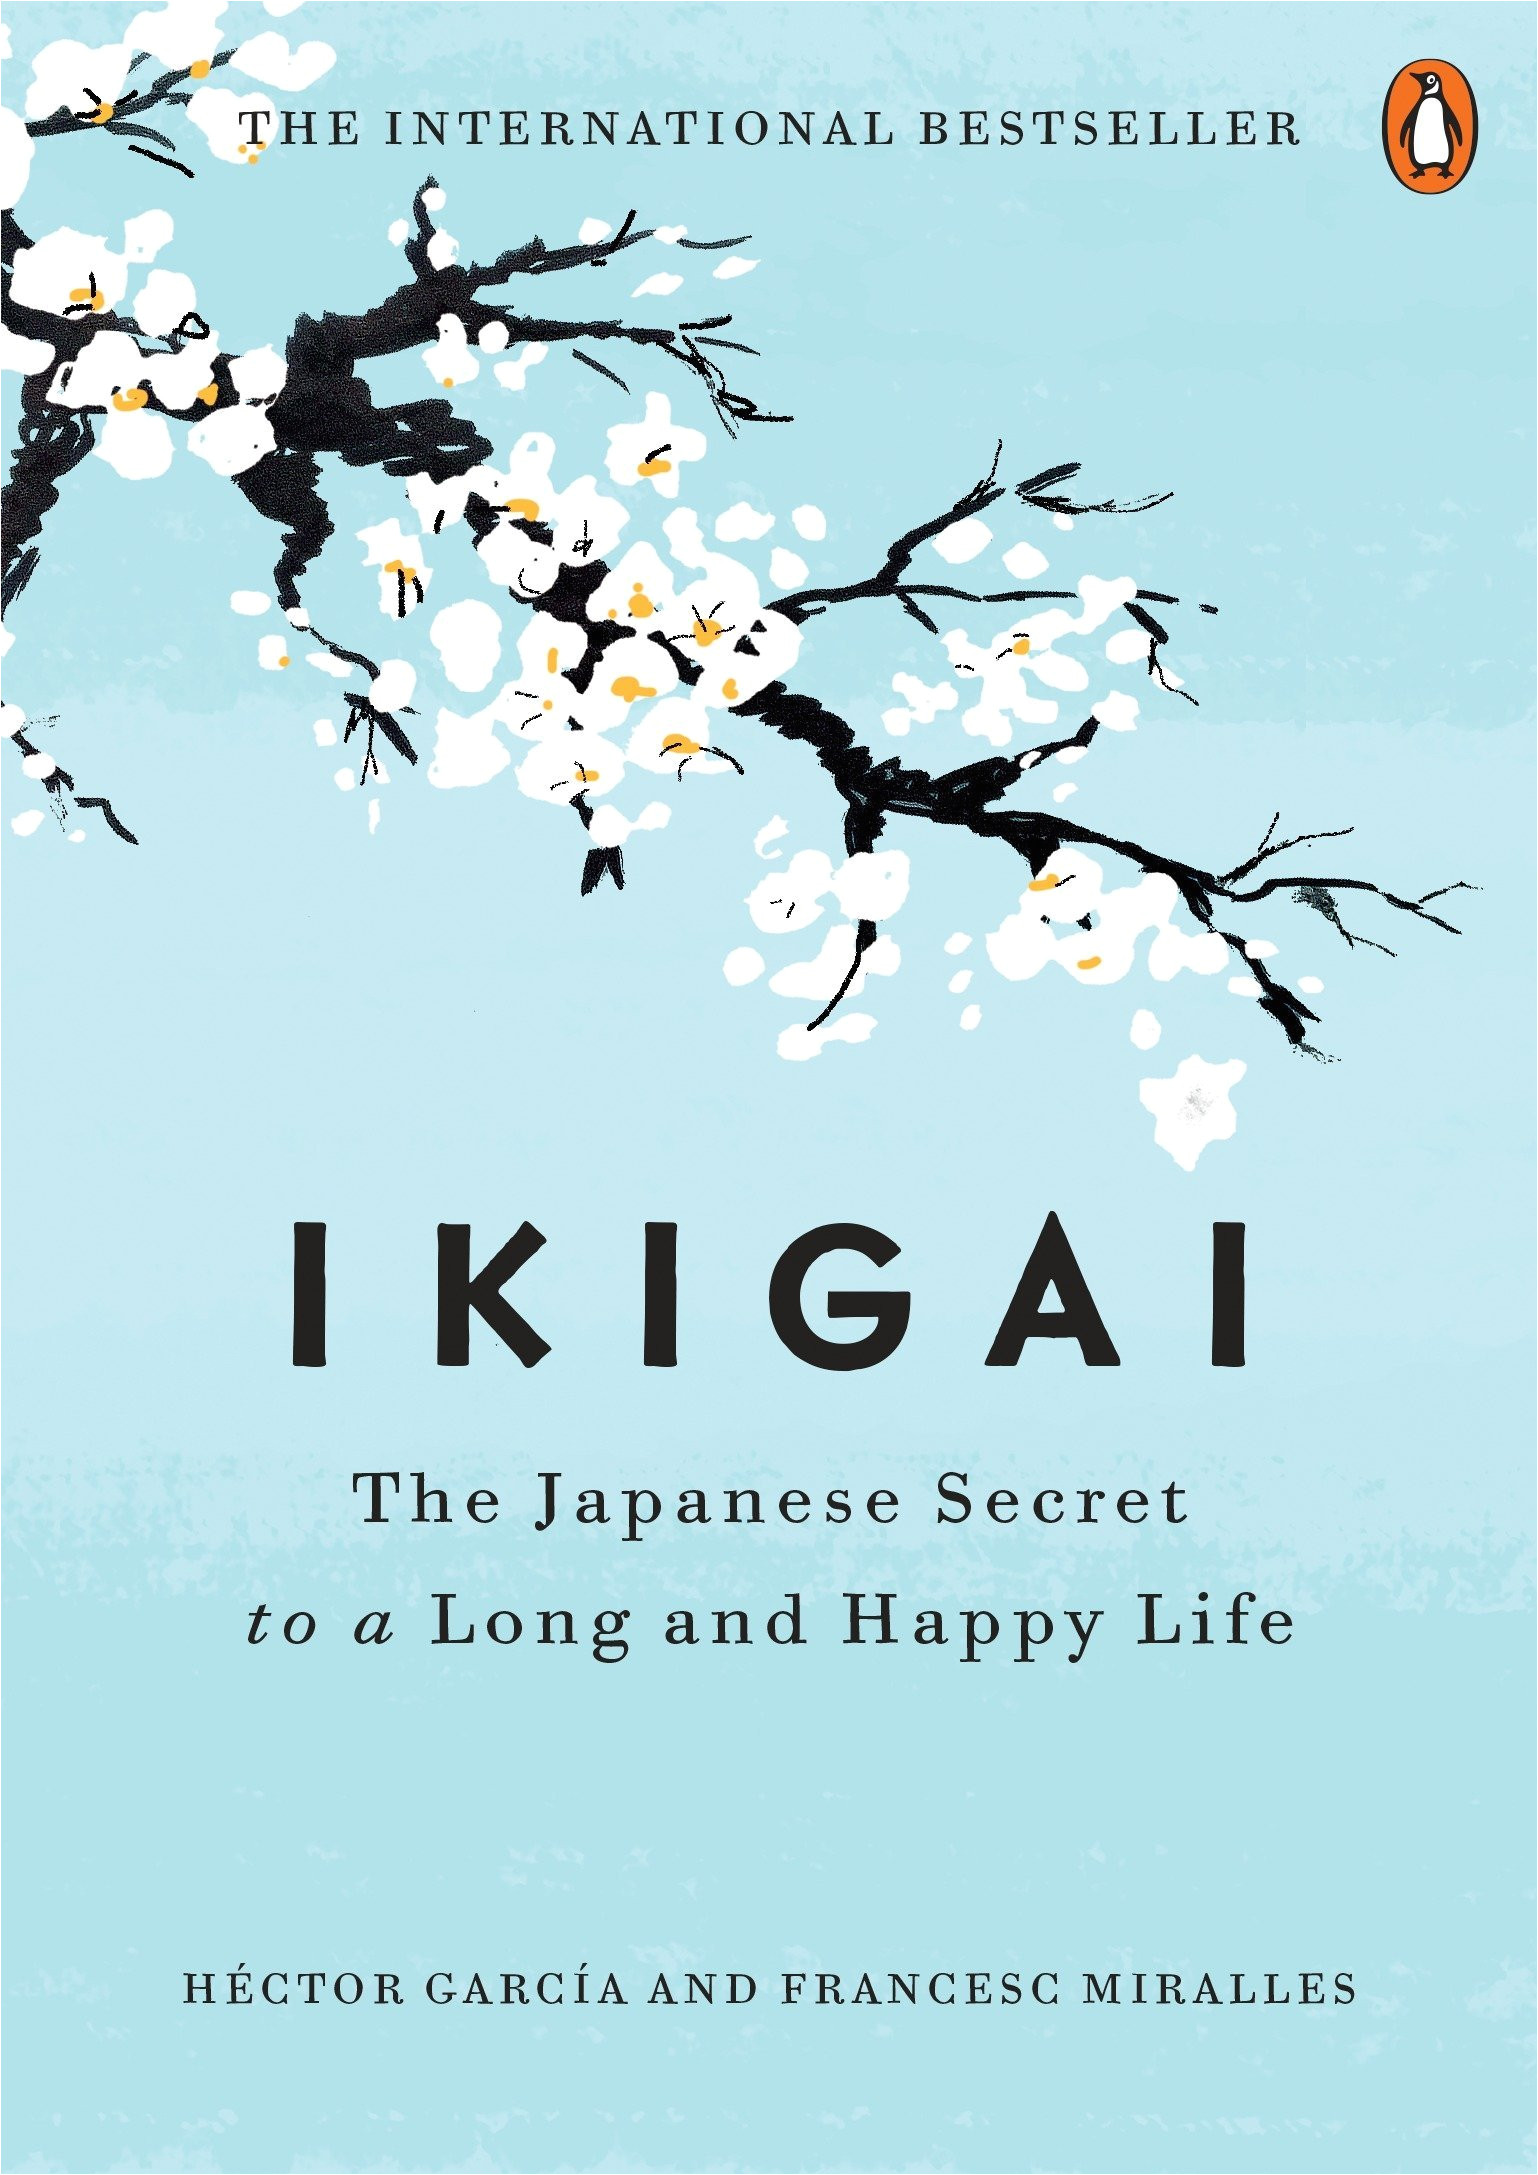 amazon com ikigai the japanese secret to a long and happy life 9780143130727 hector garca a francesc miralles books